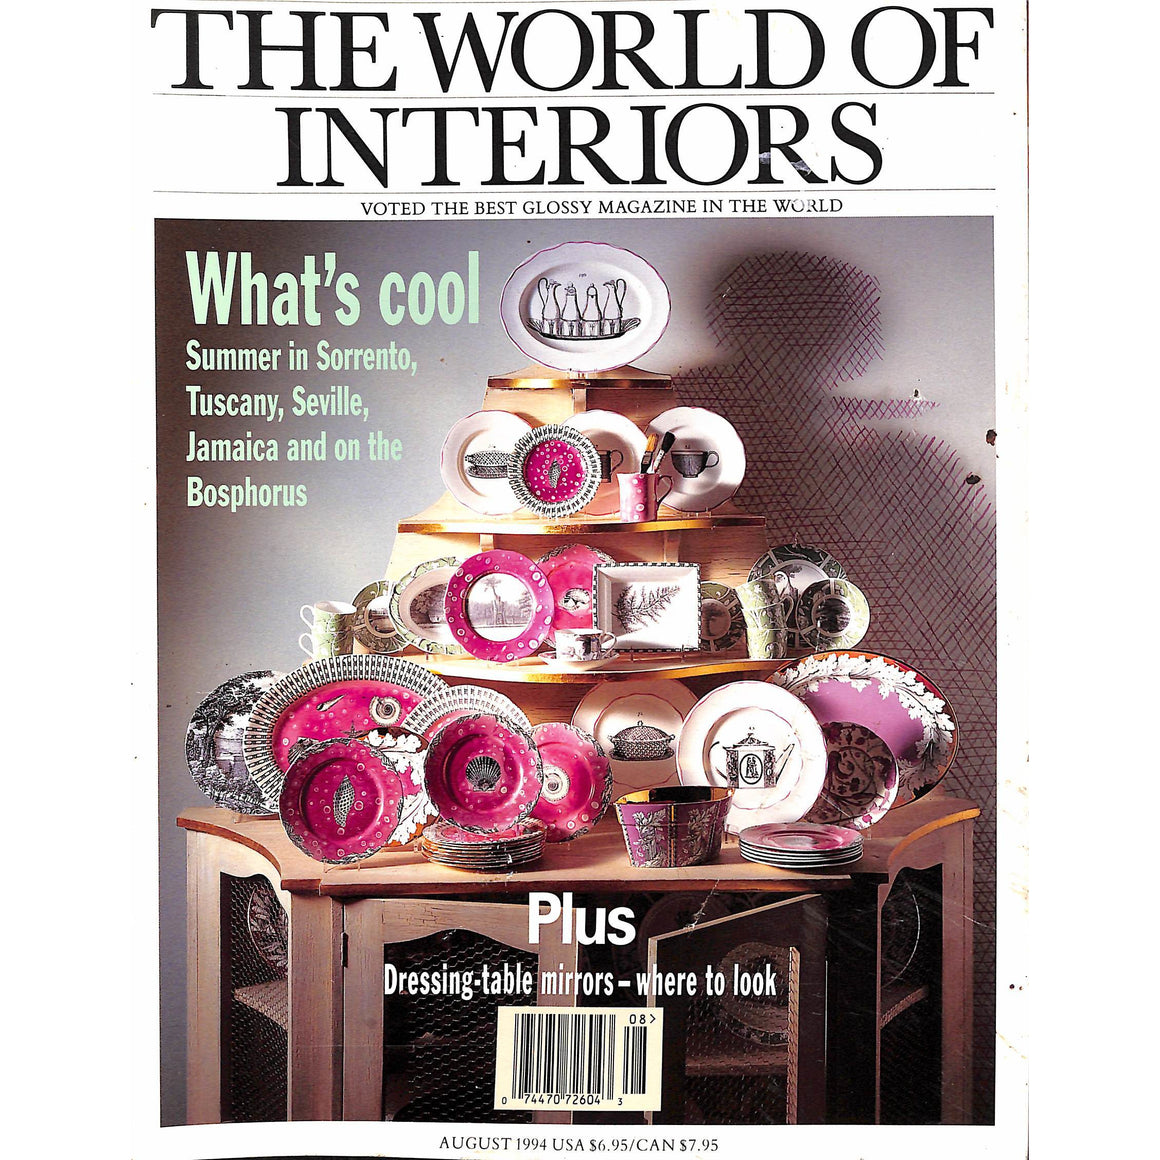 The World of Interiors August 1994